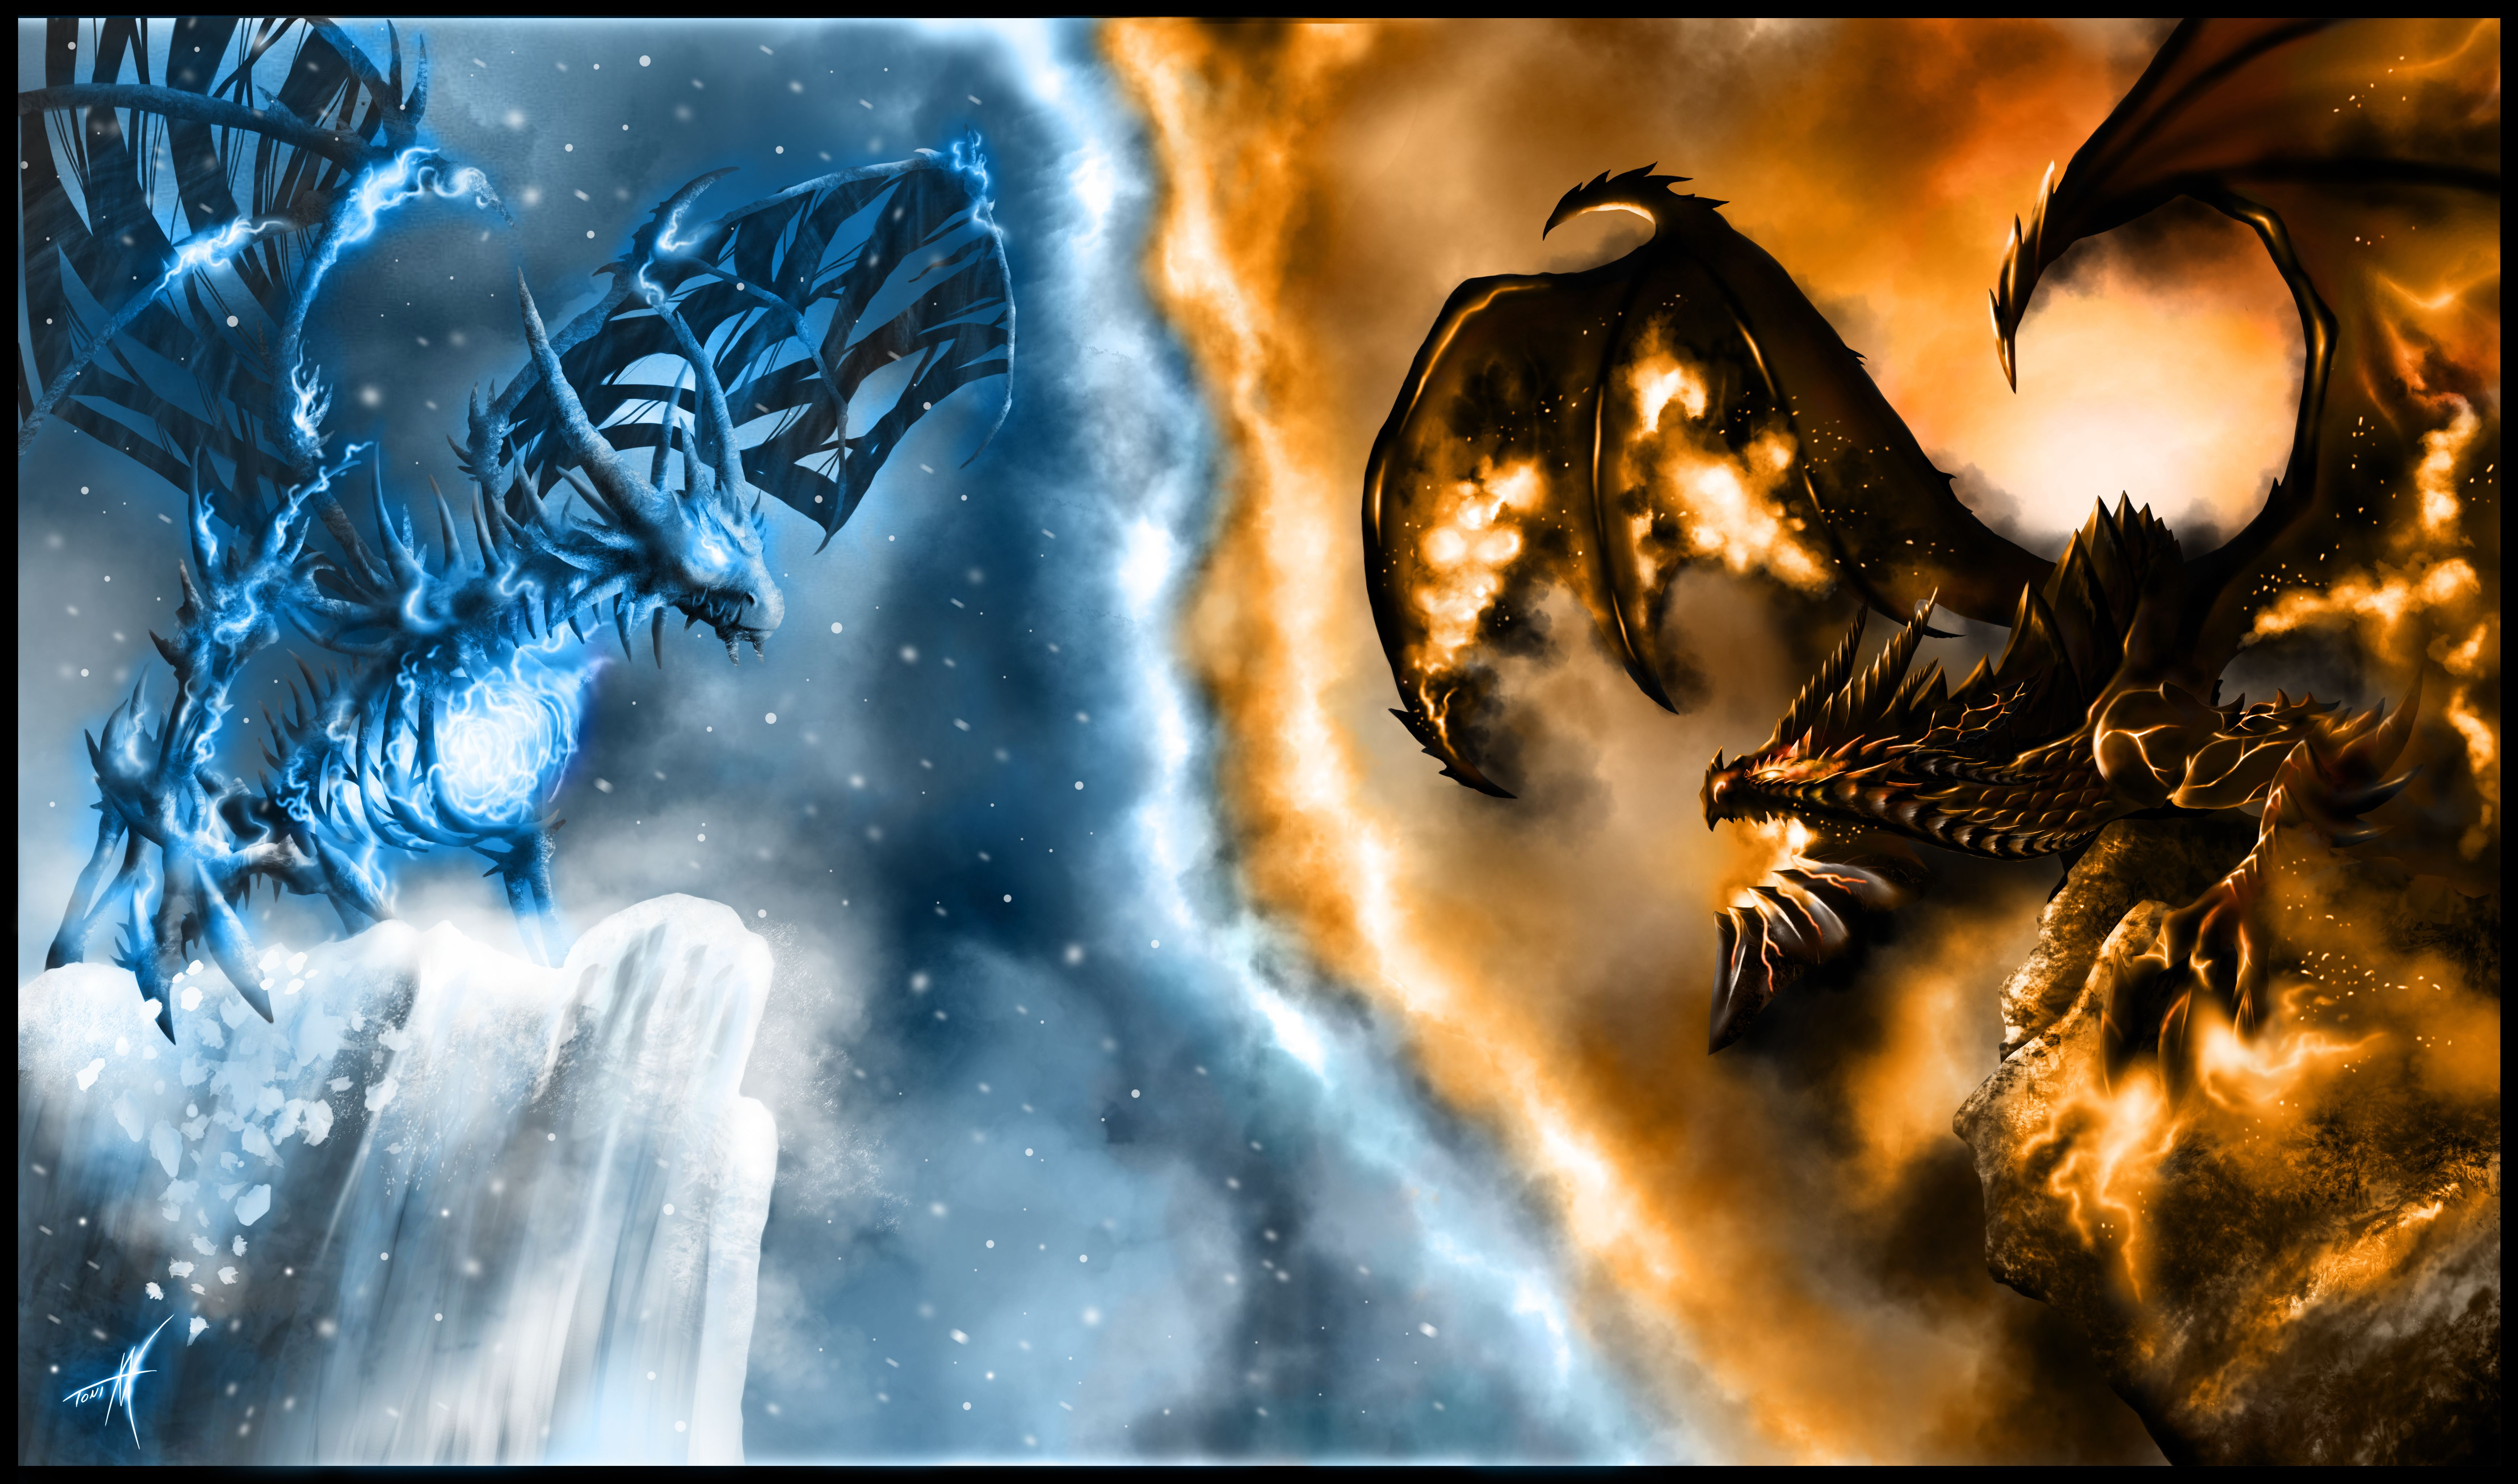 Firebreathing Dragon Images Stock Photos amp Vectors